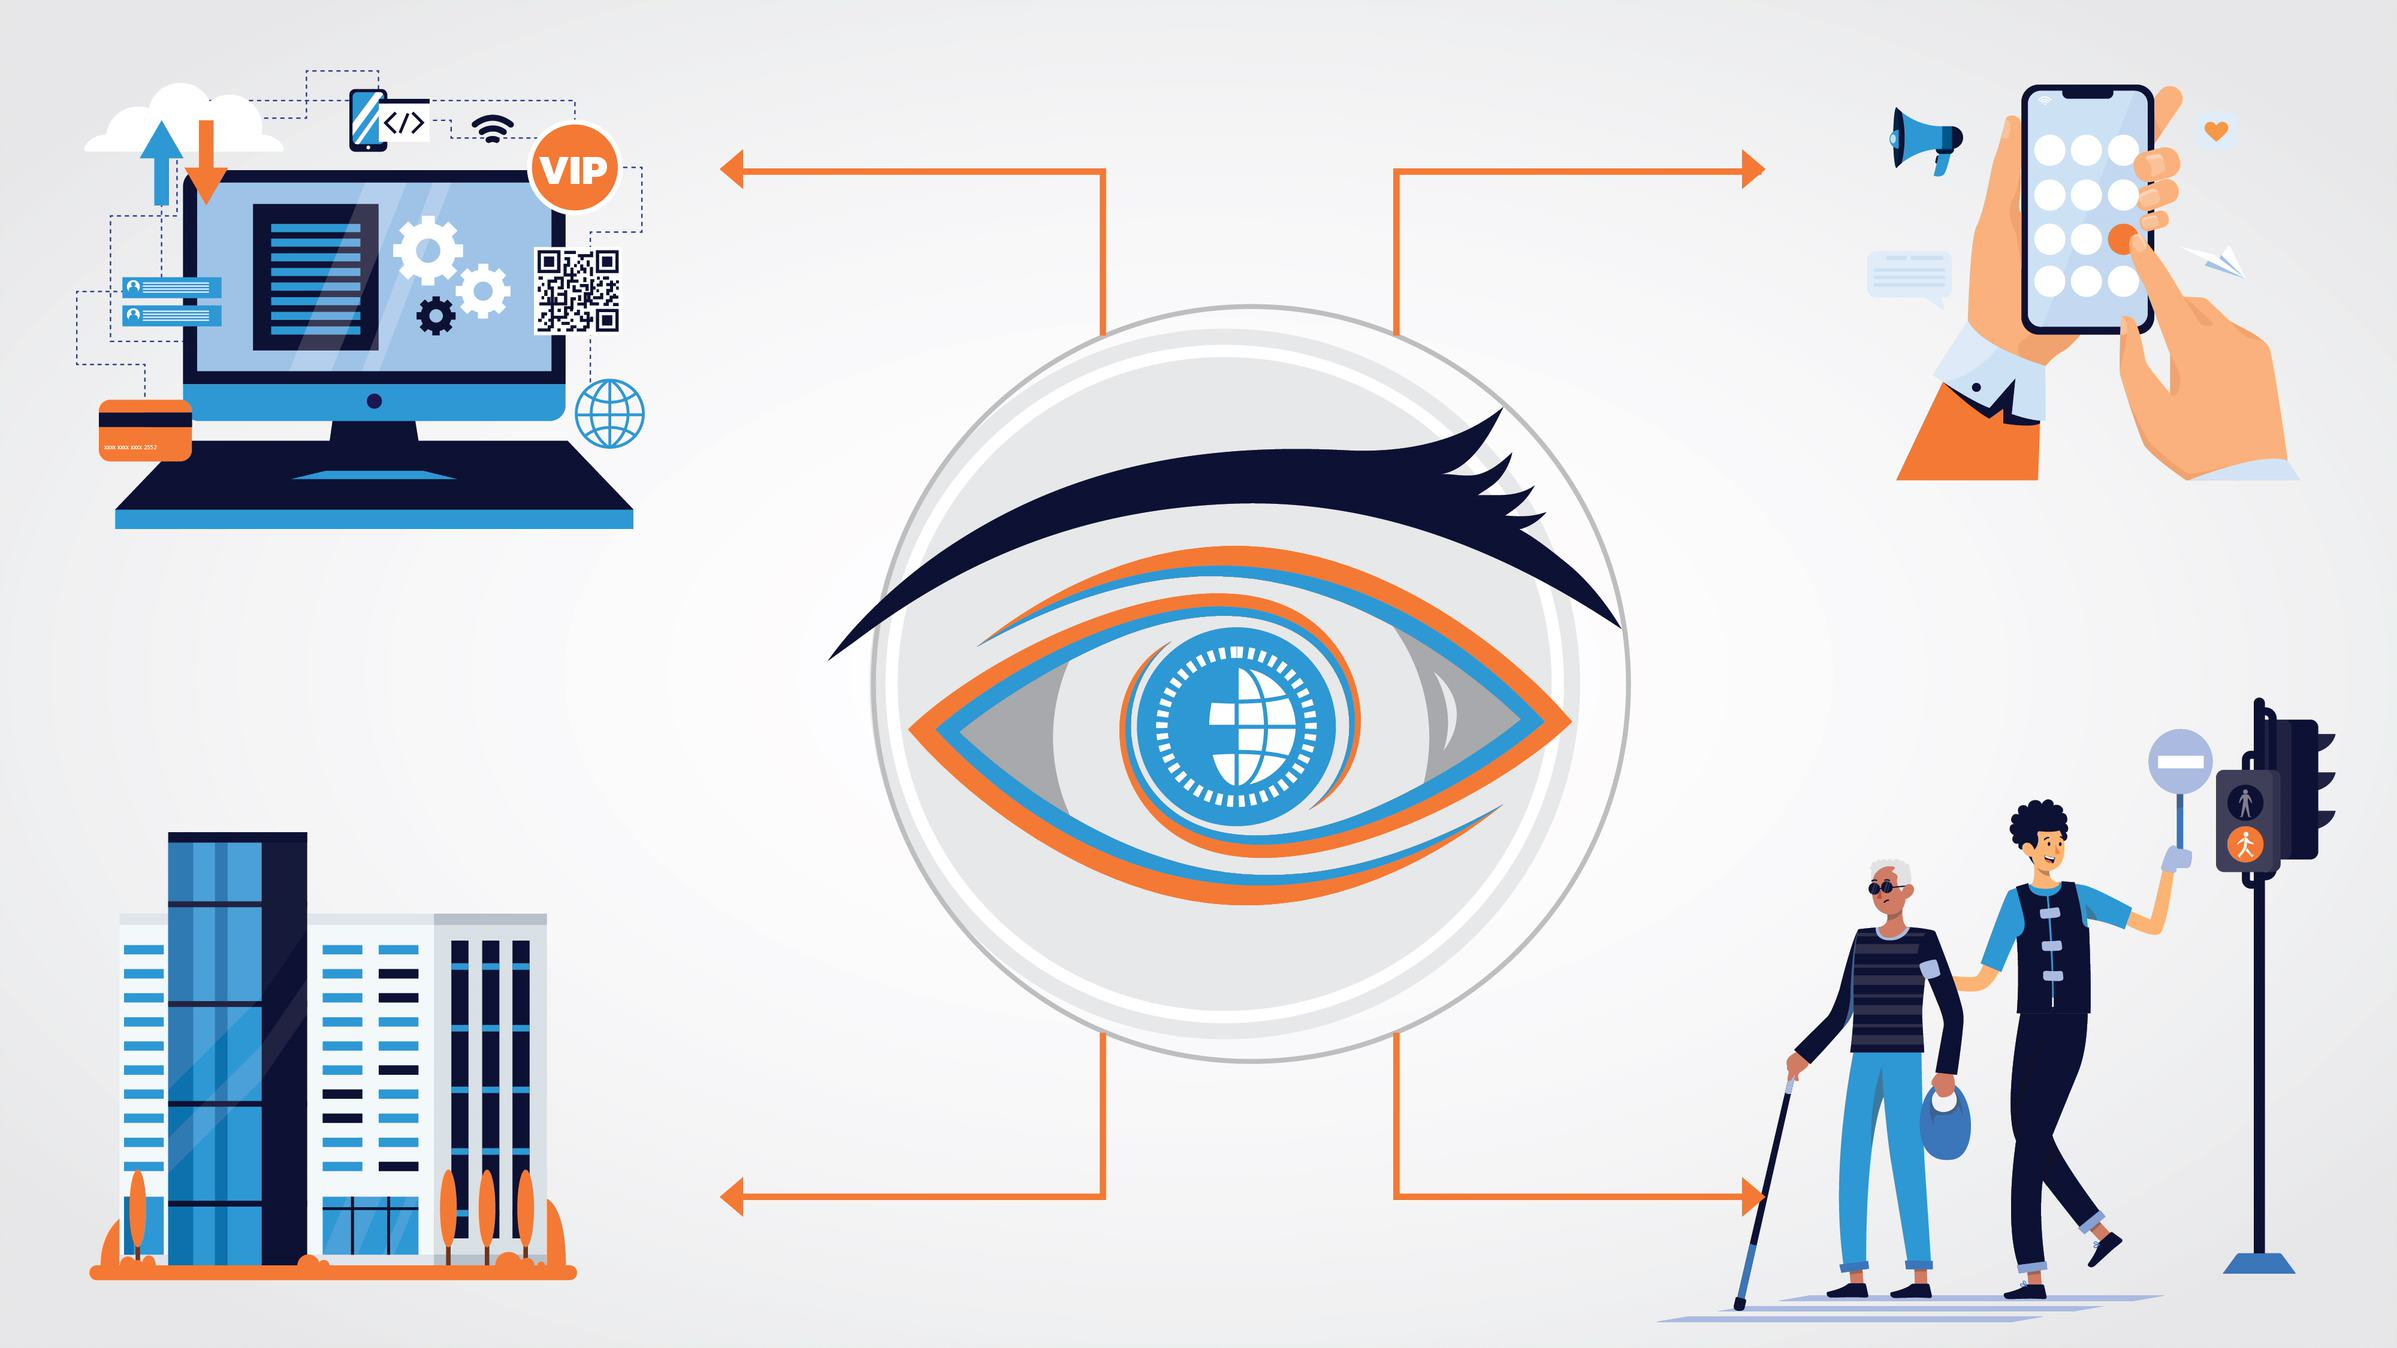 The eye's pupil representing a world where you can access technology to make life easier for VIP (Visually Impaired People)